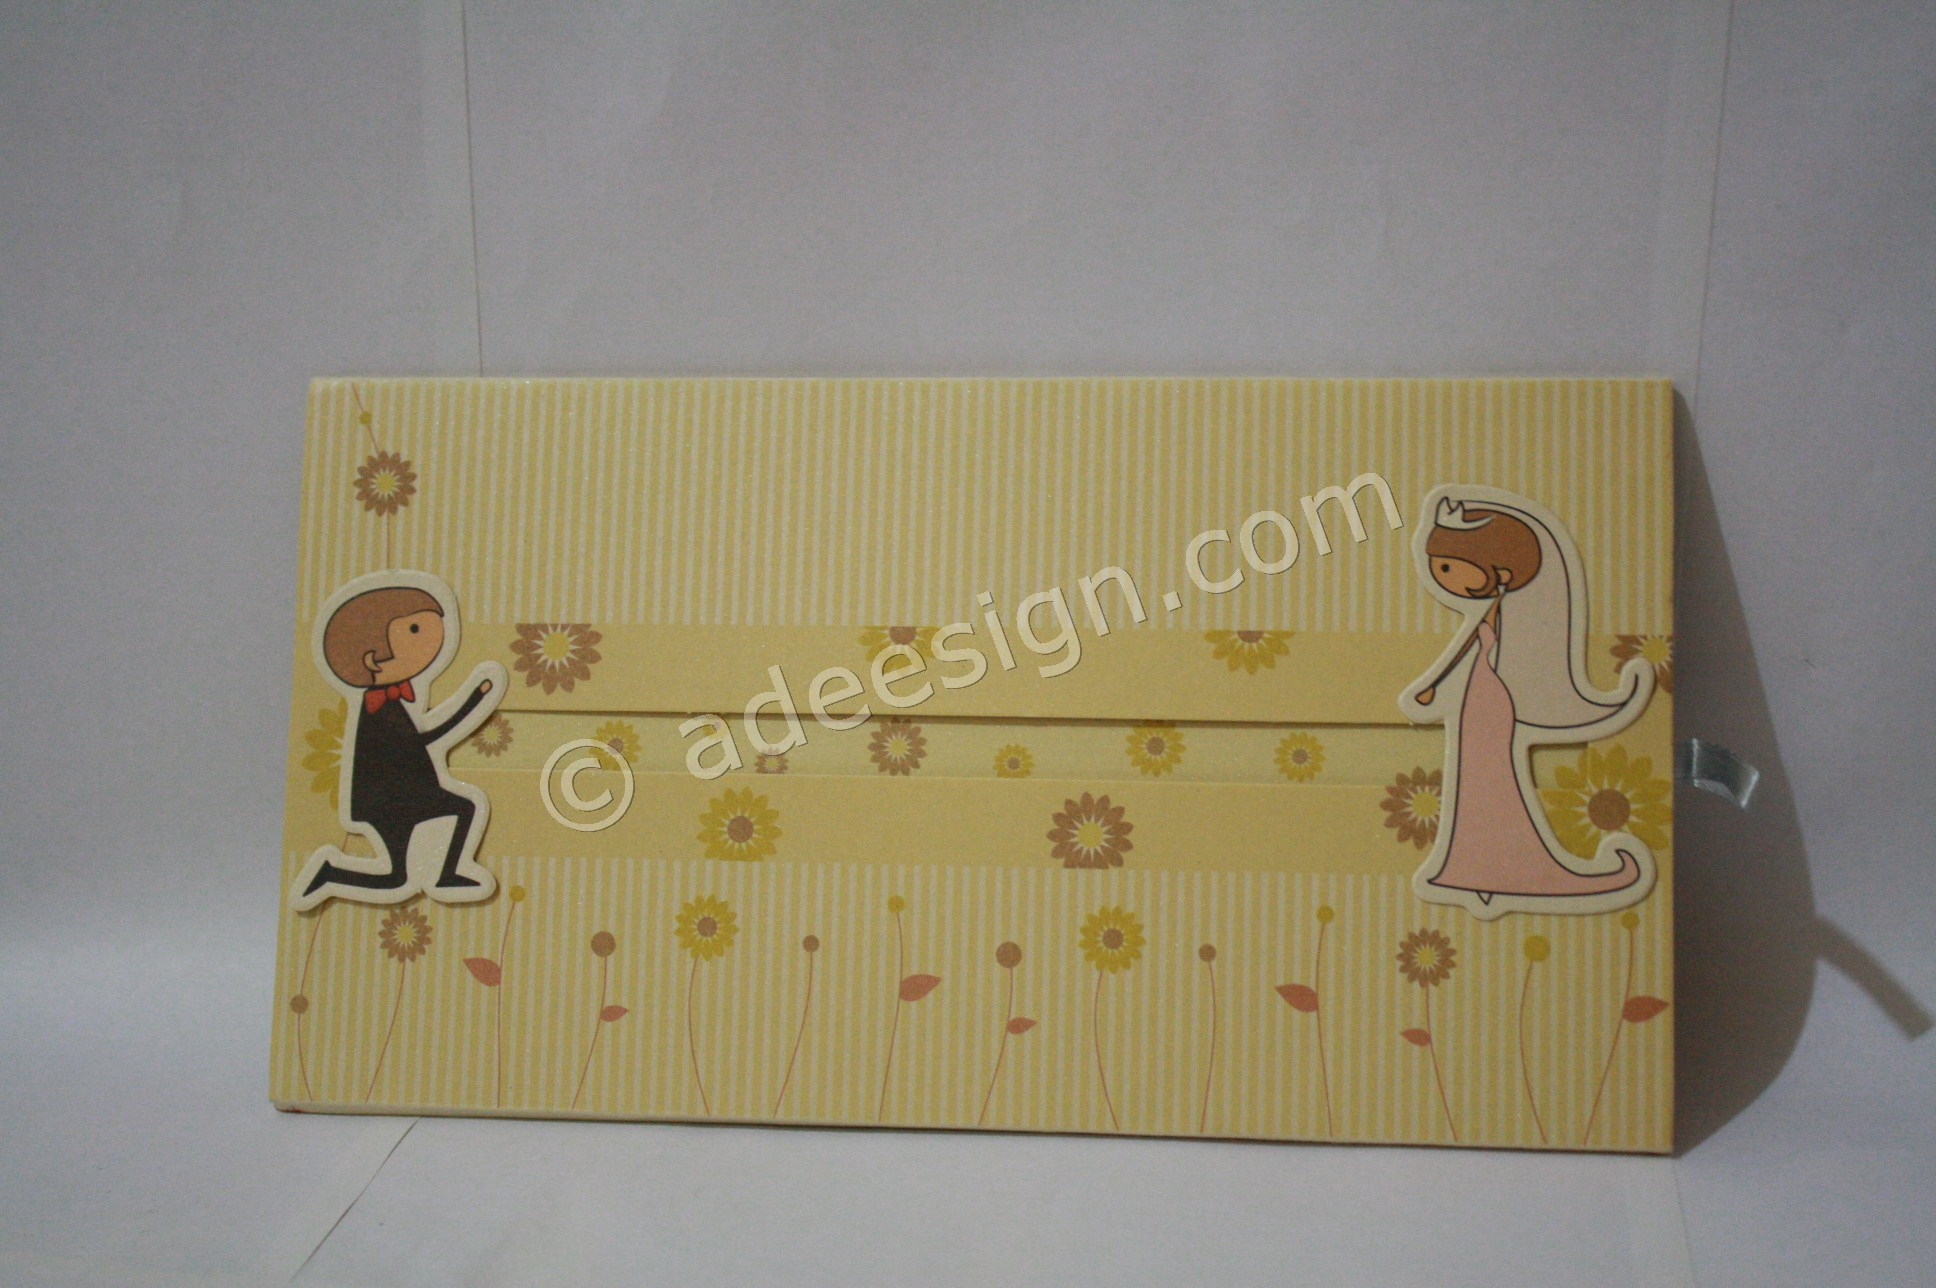 Undangan Pernikahan Hardcover ED69 - Percetakan Wedding Invitations Elegan di Pakal